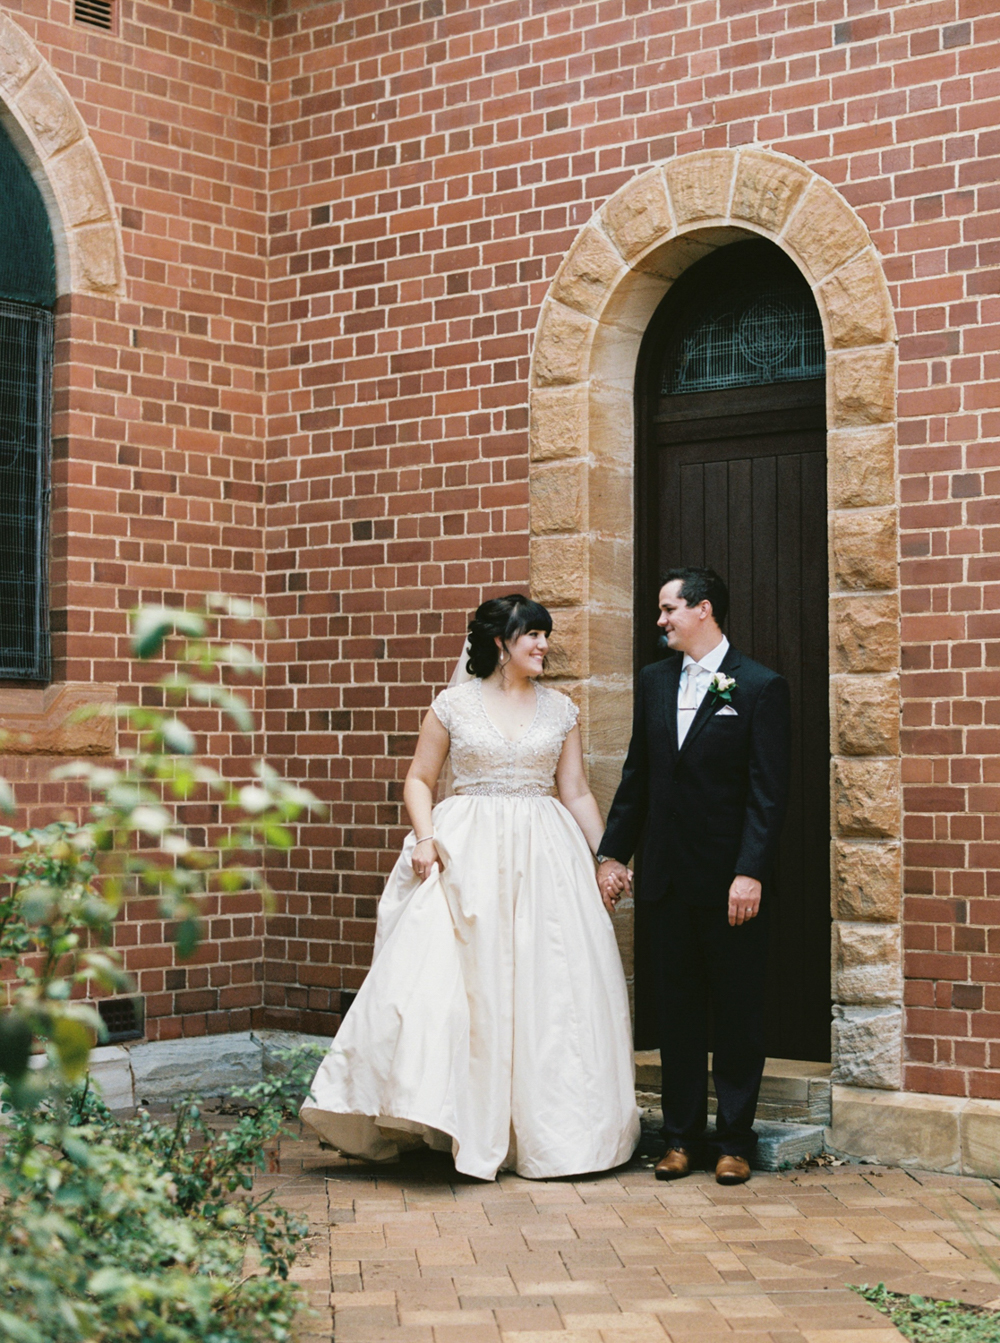 00044- Dubbo NSW Wedding Photographer Sheri McMahon.jpg